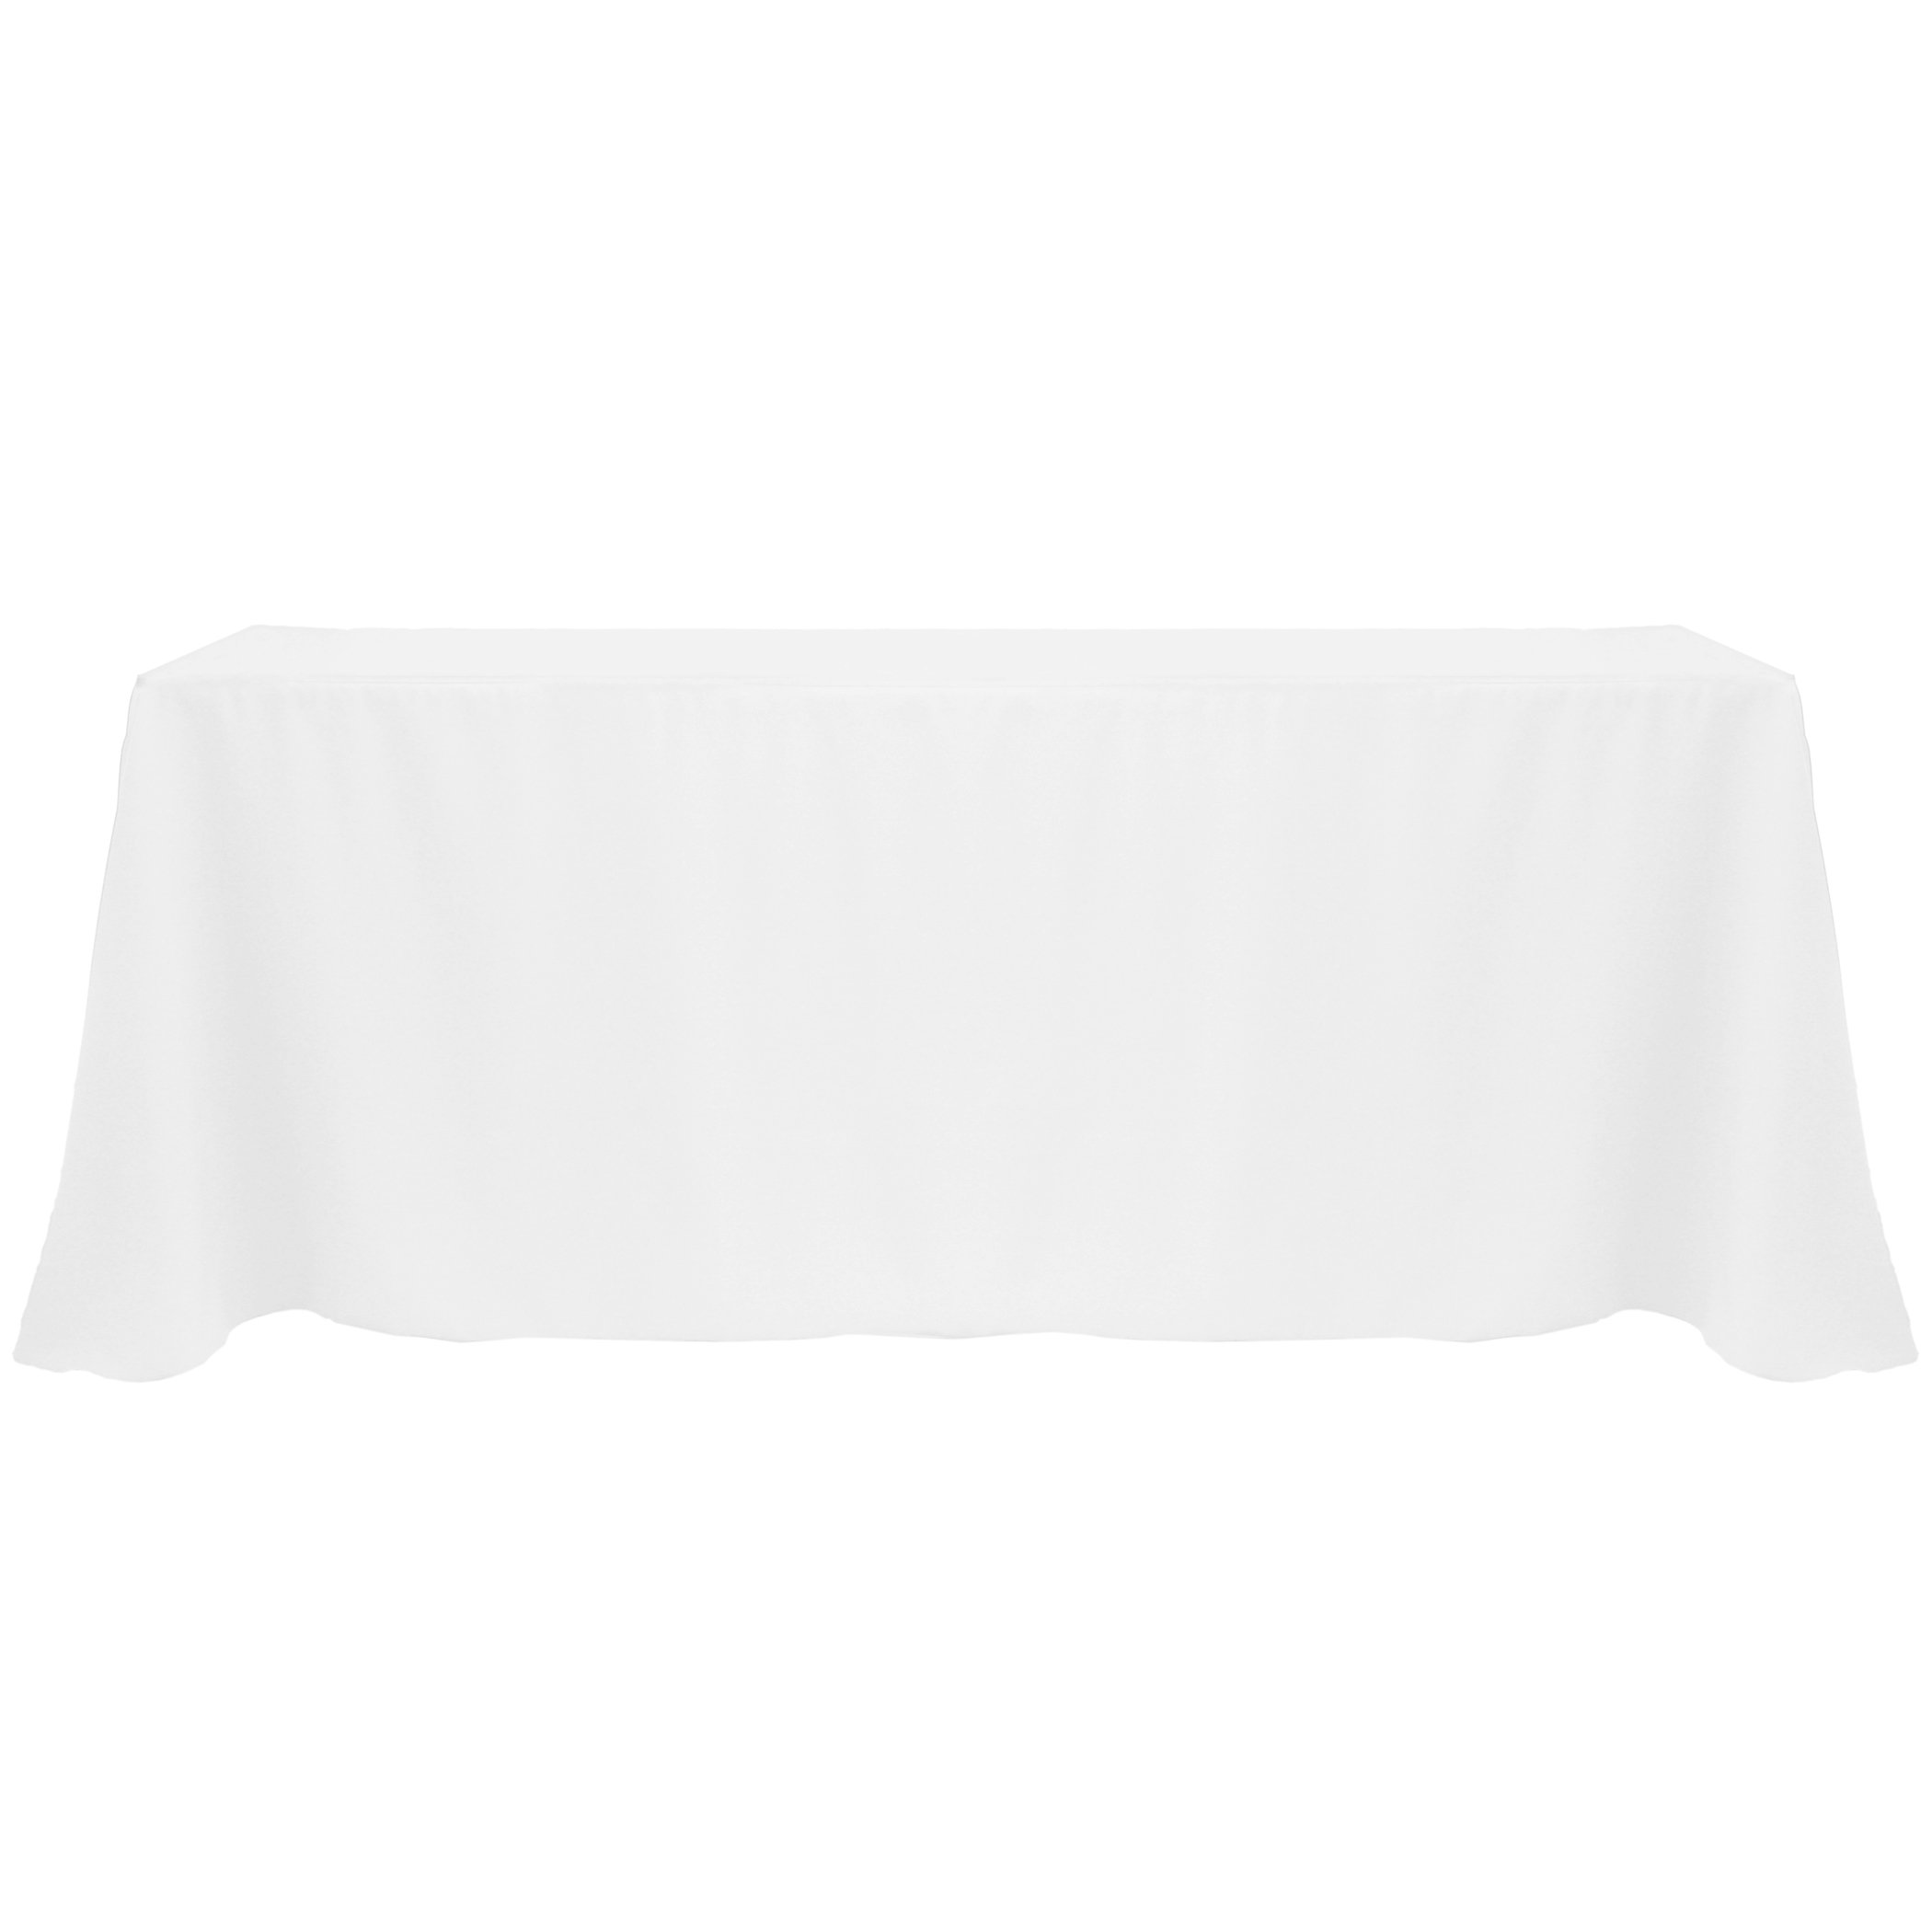 Ultimate Textile (5 Pack) 90 x 132-Inch Rectangular Polyester Linen Tablecloth with Rounded Corners - for Wedding, Restaurant or Banquet use, White